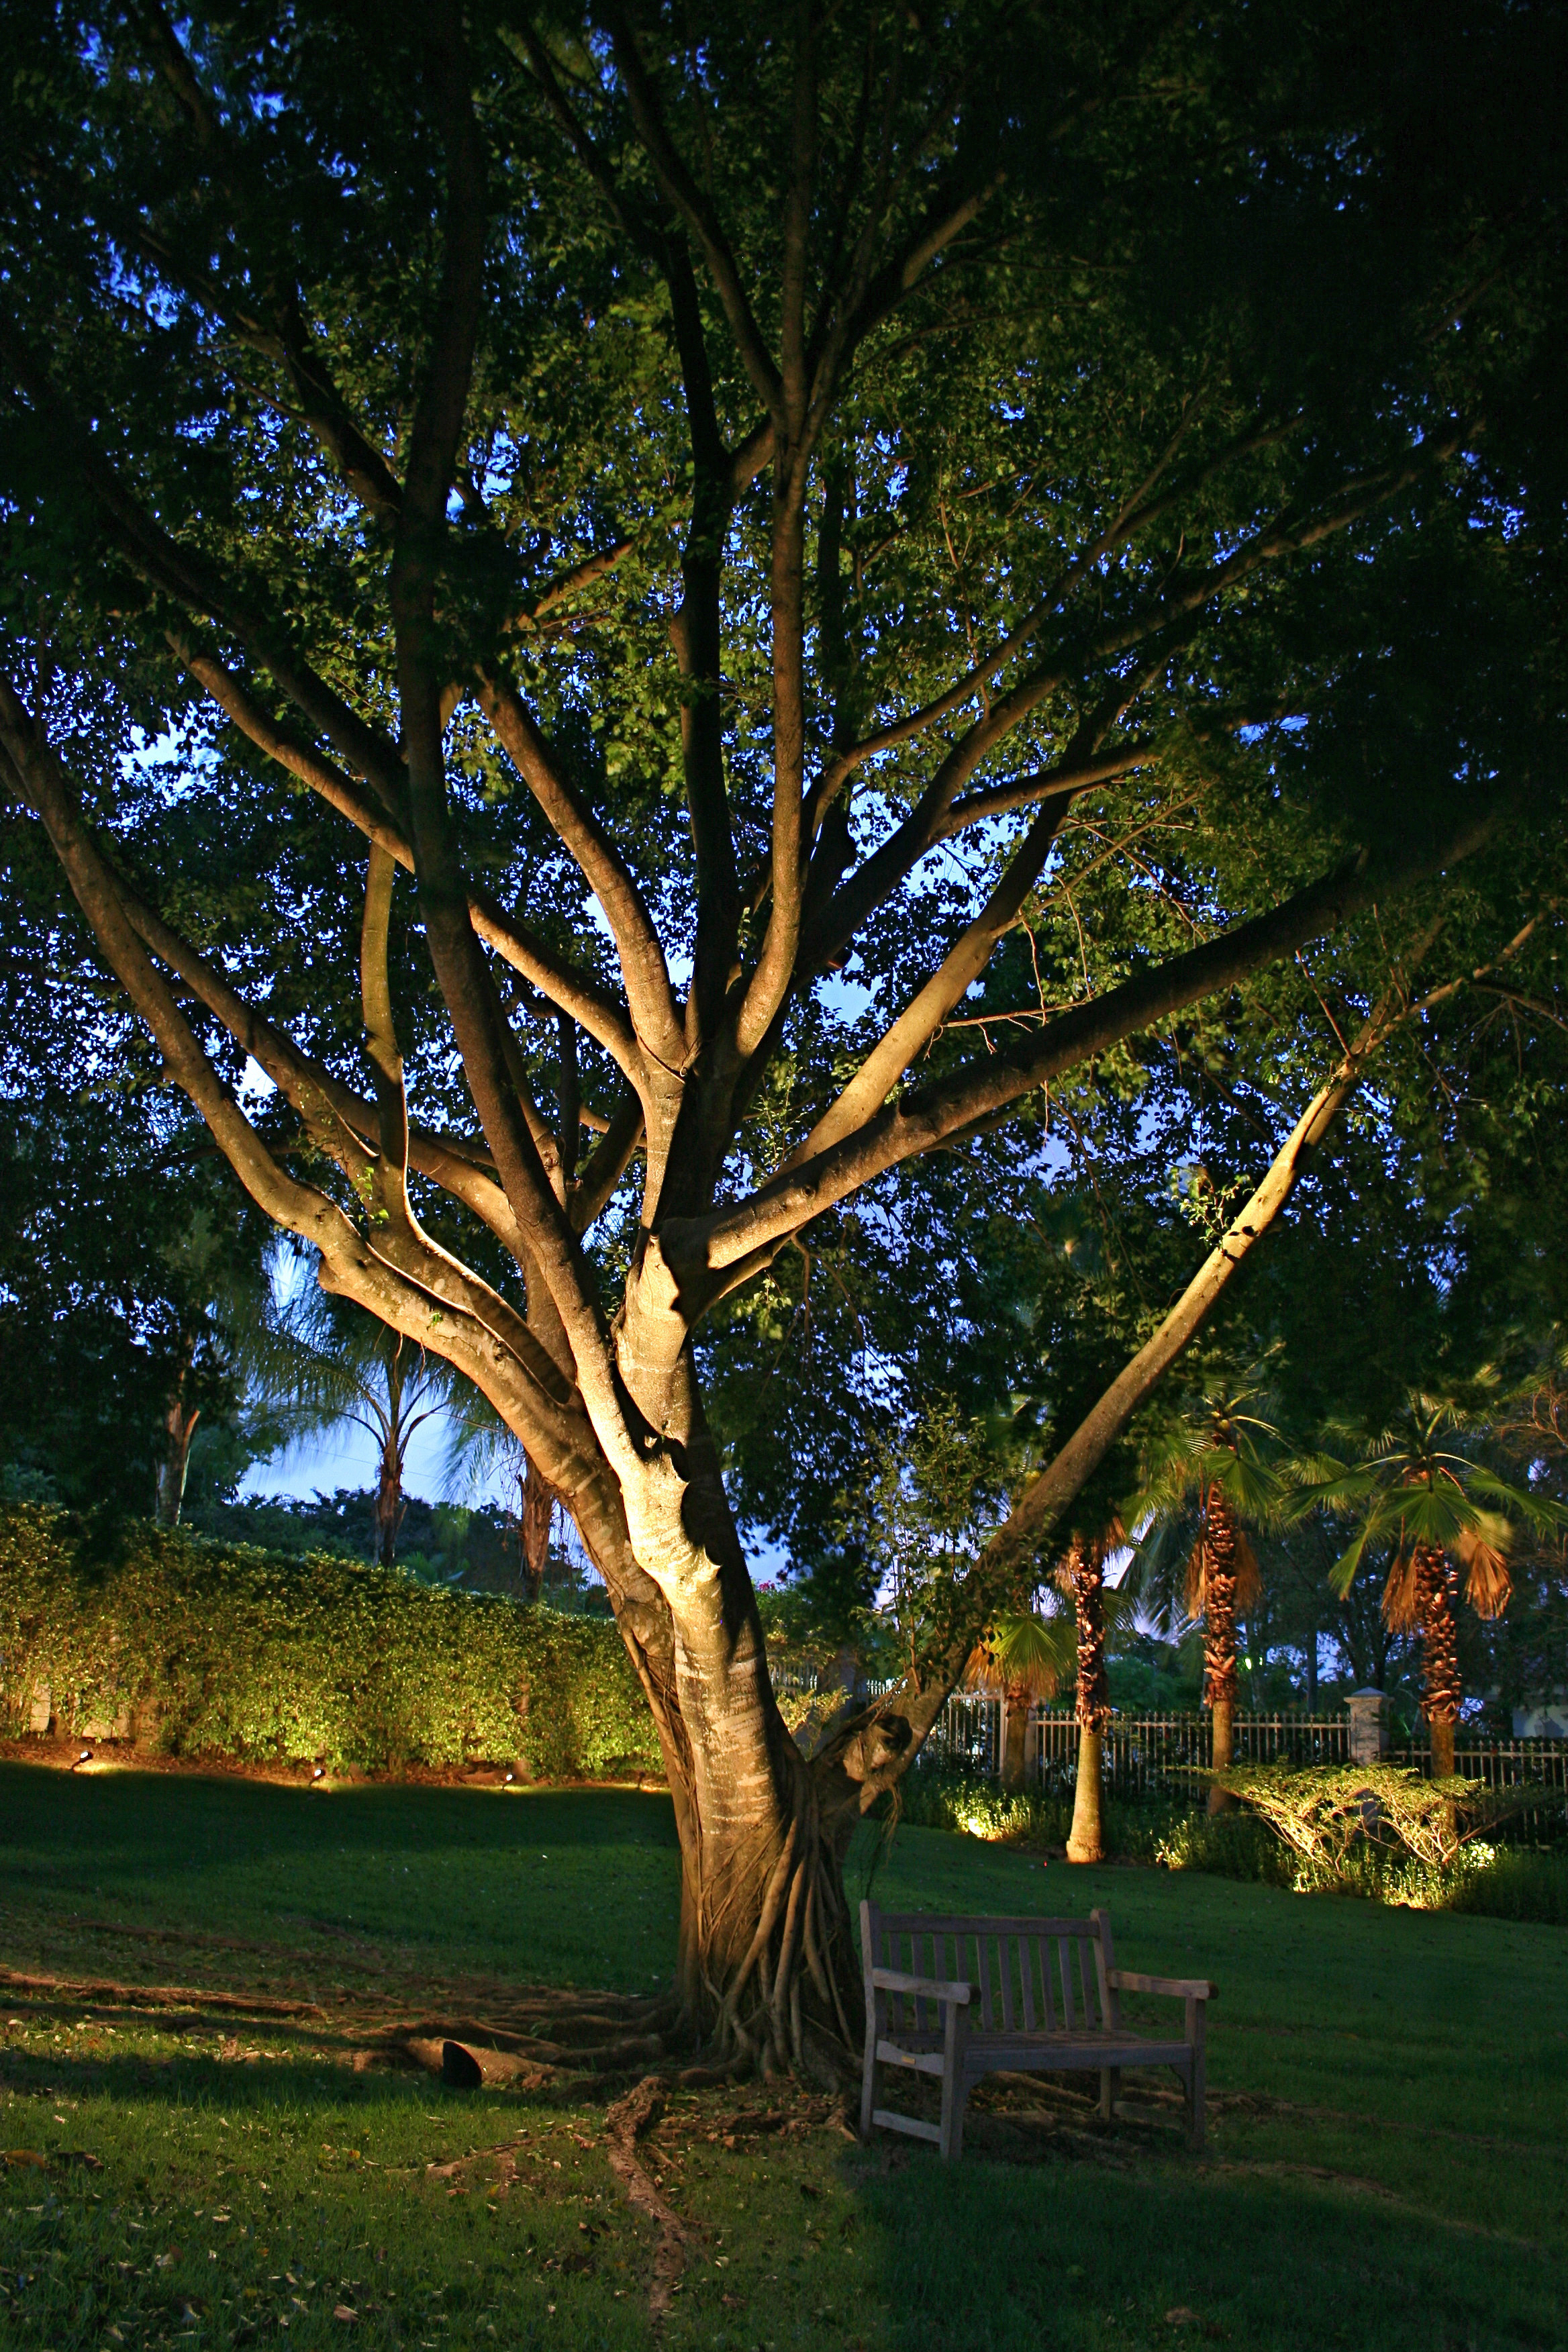 Outdoor Lighting Trees Tree lighting outdoor lighting perspectives up lighting on trees can make a dramatic statement workwithnaturefo